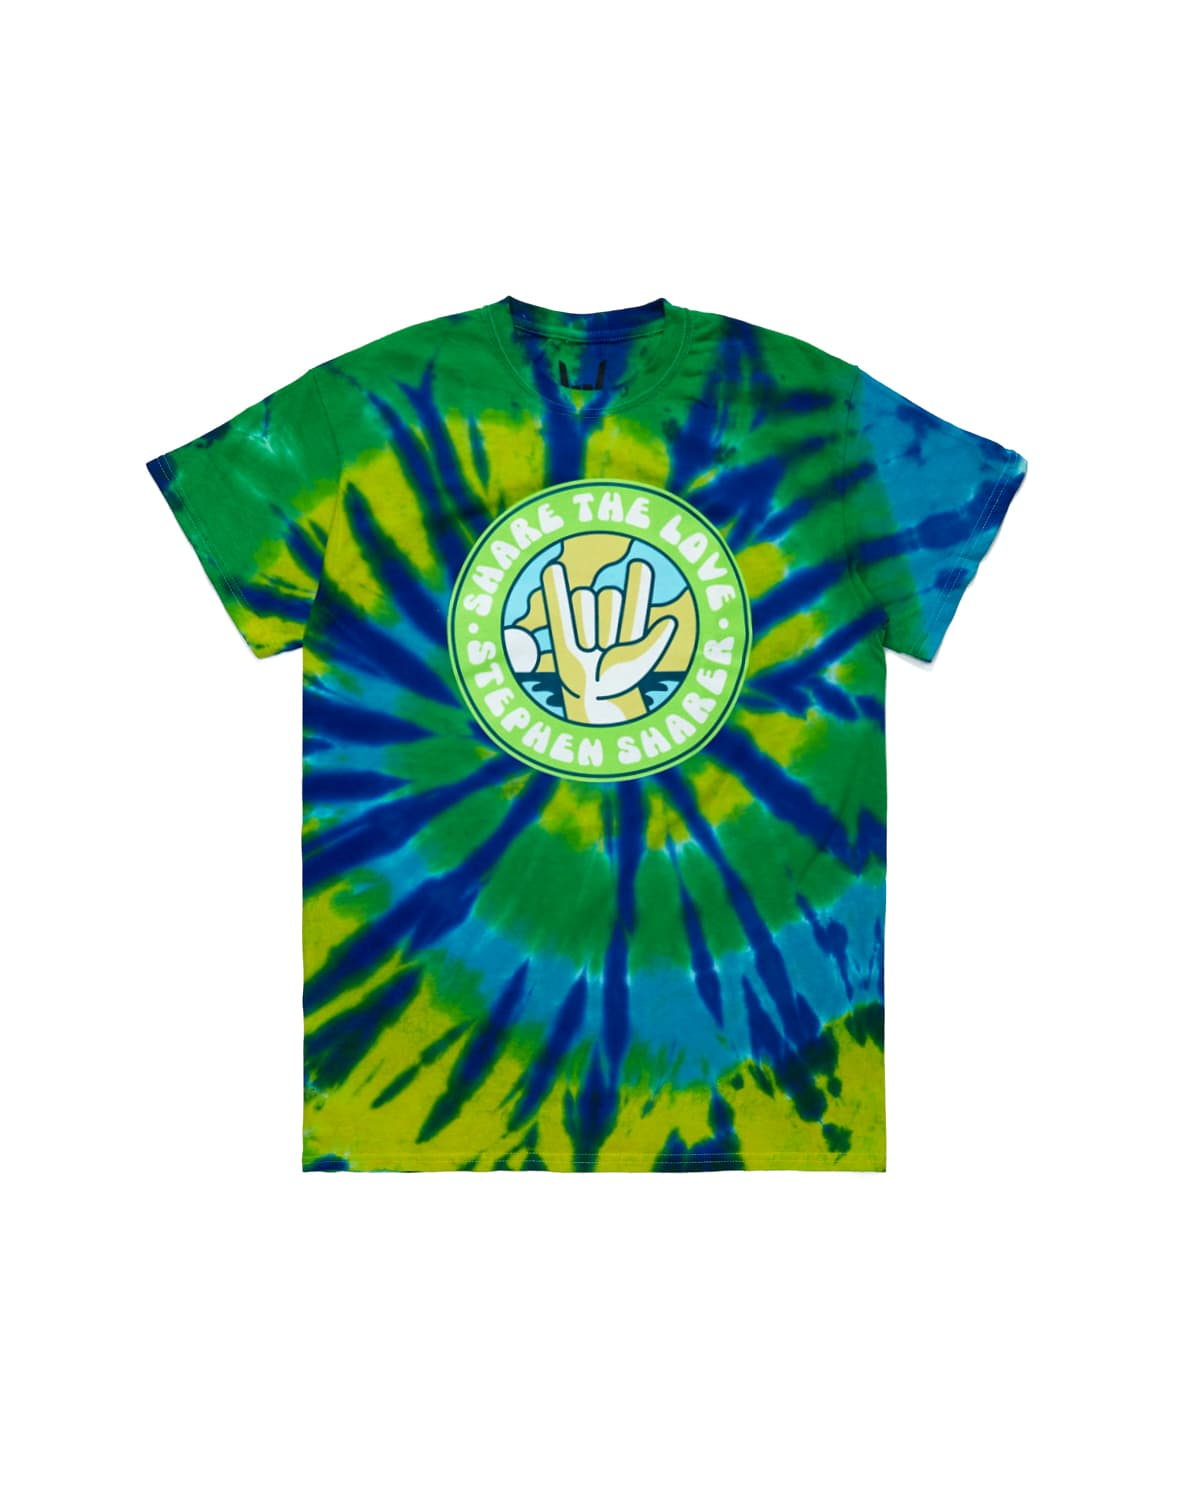 'Fun In The Sun' Tie Dye Tee